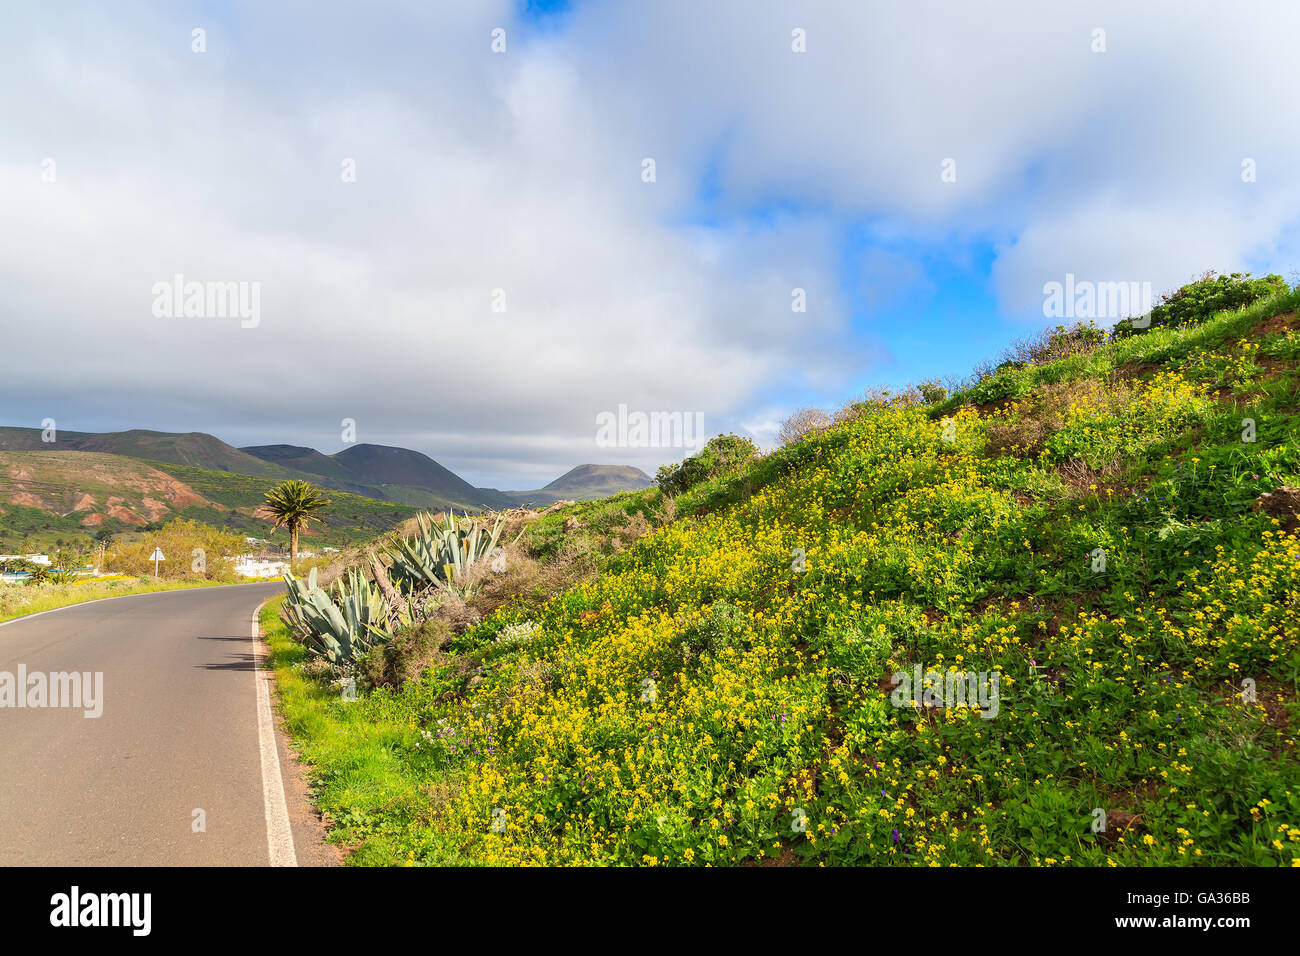 Yellow spring flowers growing along road to Haria village, Lanzarote island, Spain - Stock Image